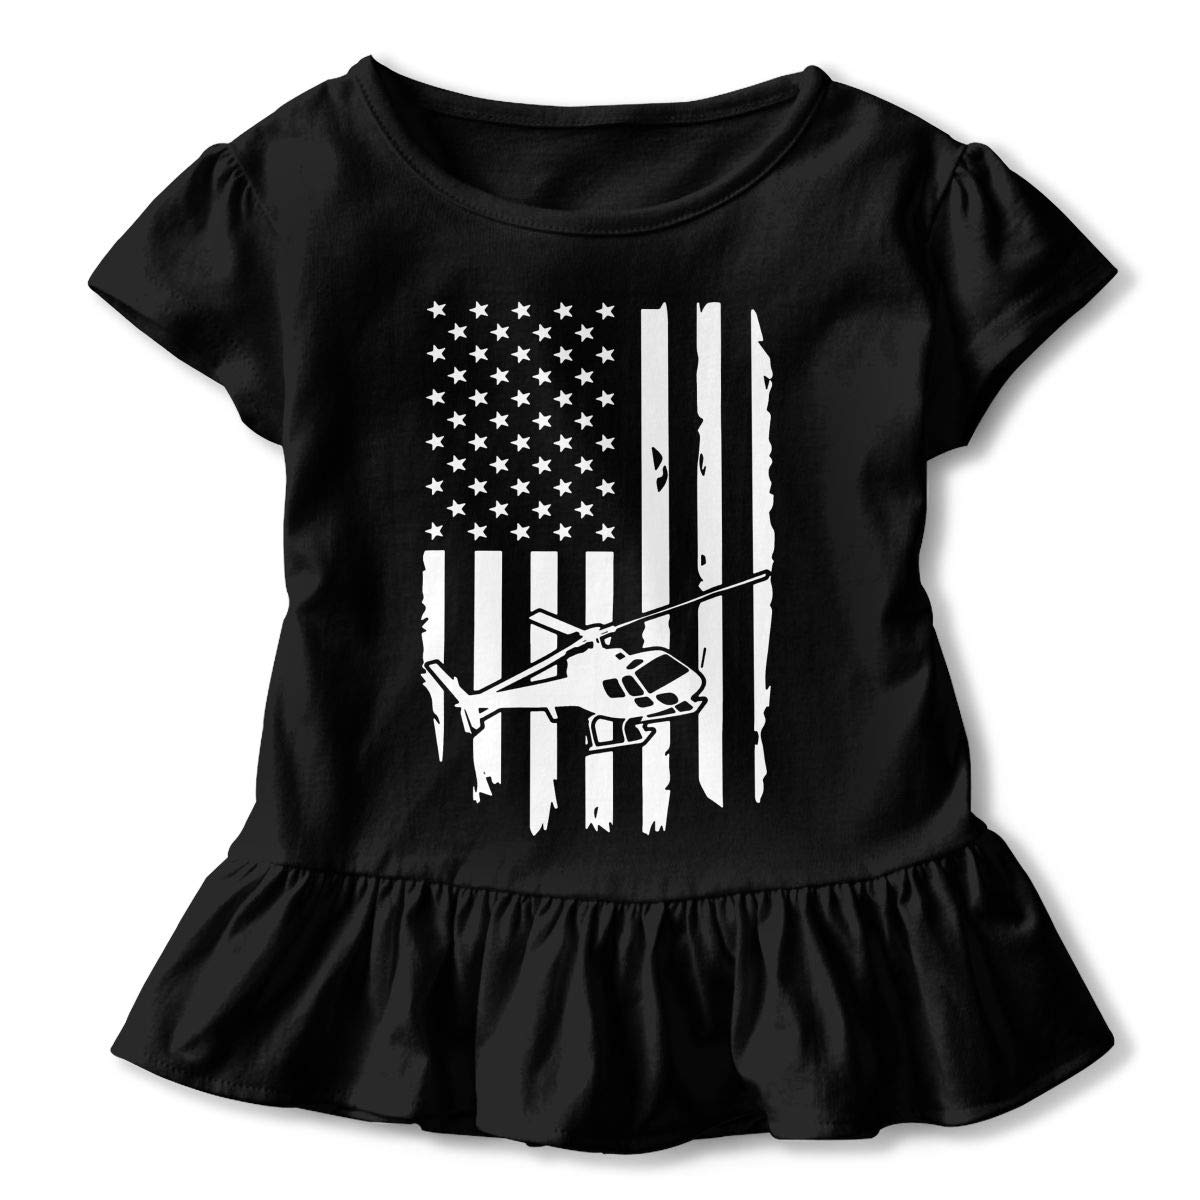 2-Pack Cotton Tee Helicopter American Flag Baby Girls Short Sleeve Ruffles T-Shirt Tops